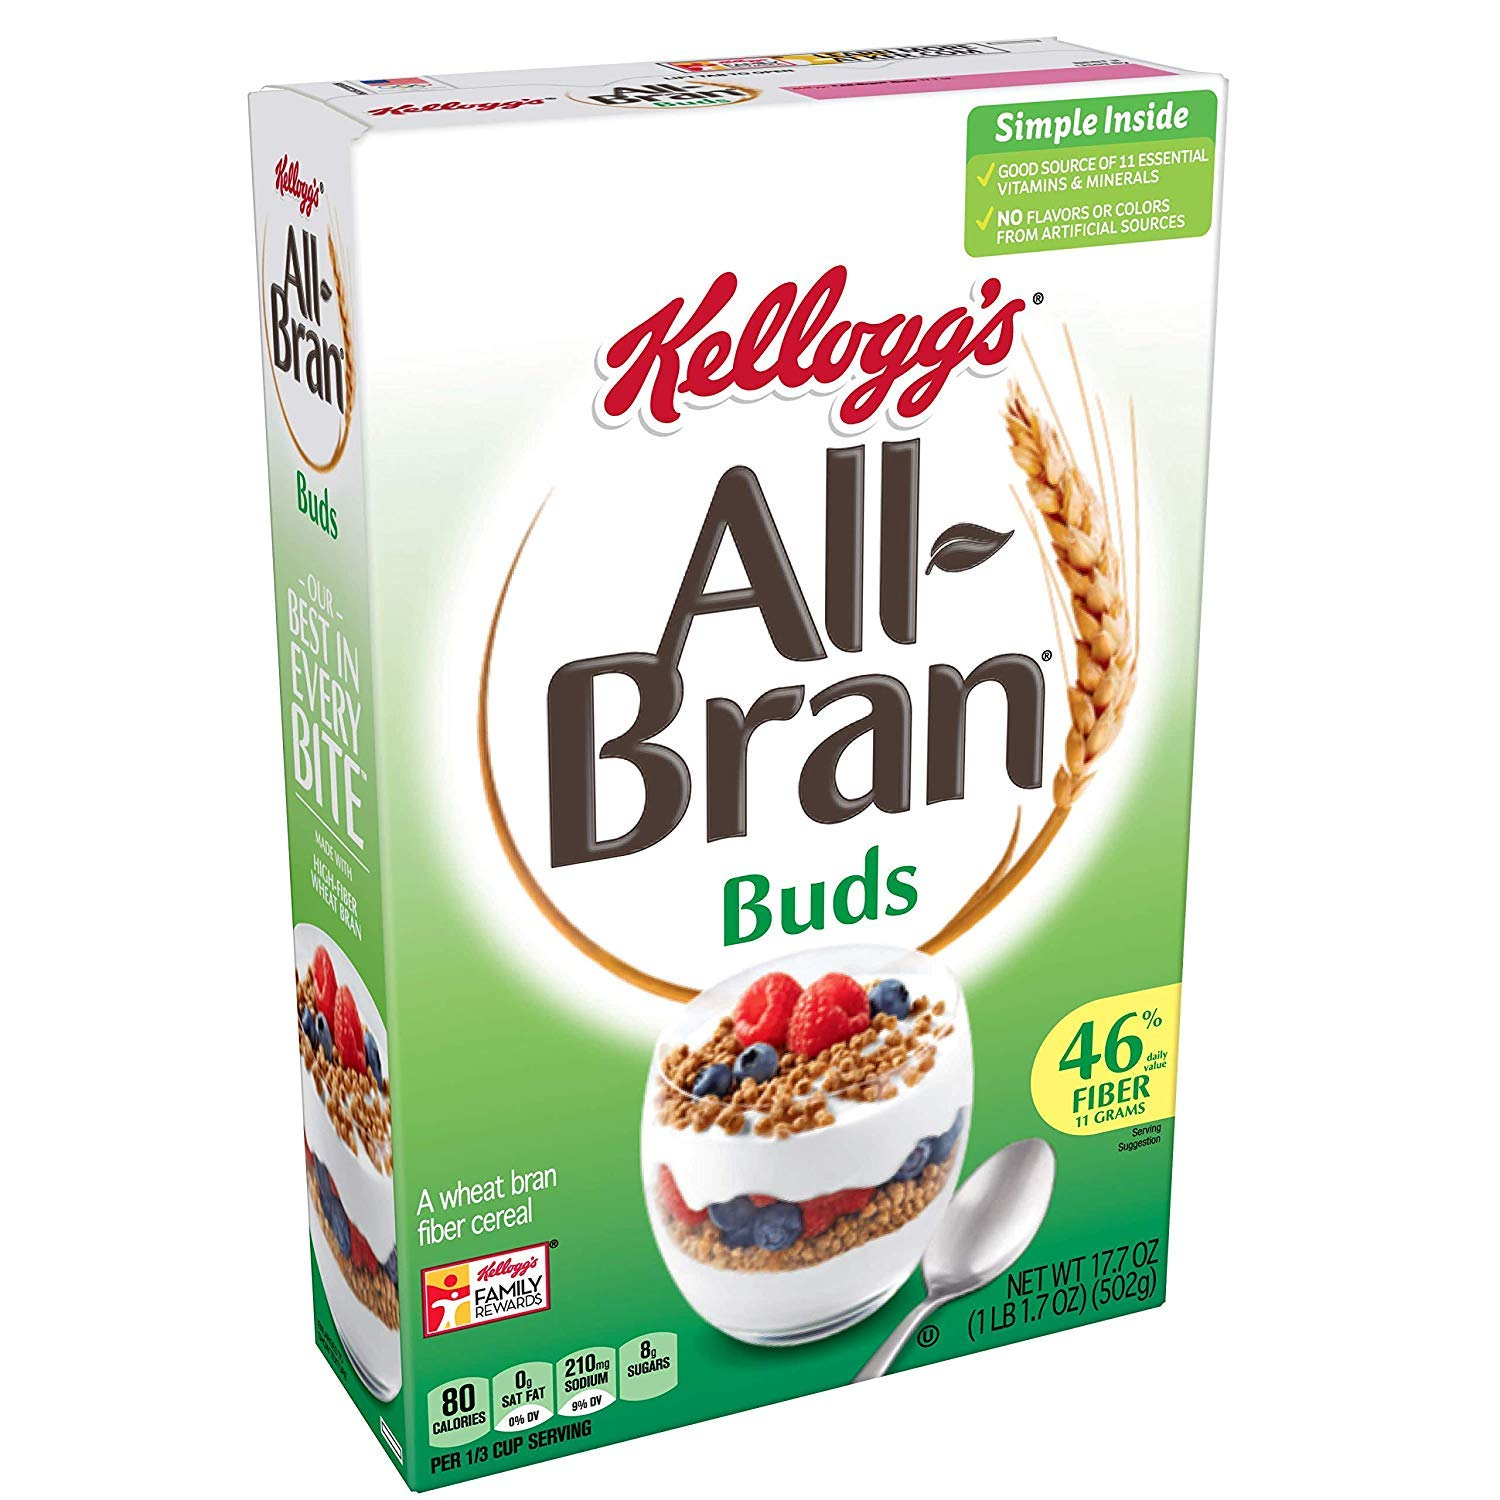 All-Bran Buds, Breakfast Cereal, Wheat Bran, Excellent Source of Fiber, 17.7 oz Box ( 2 PACK )